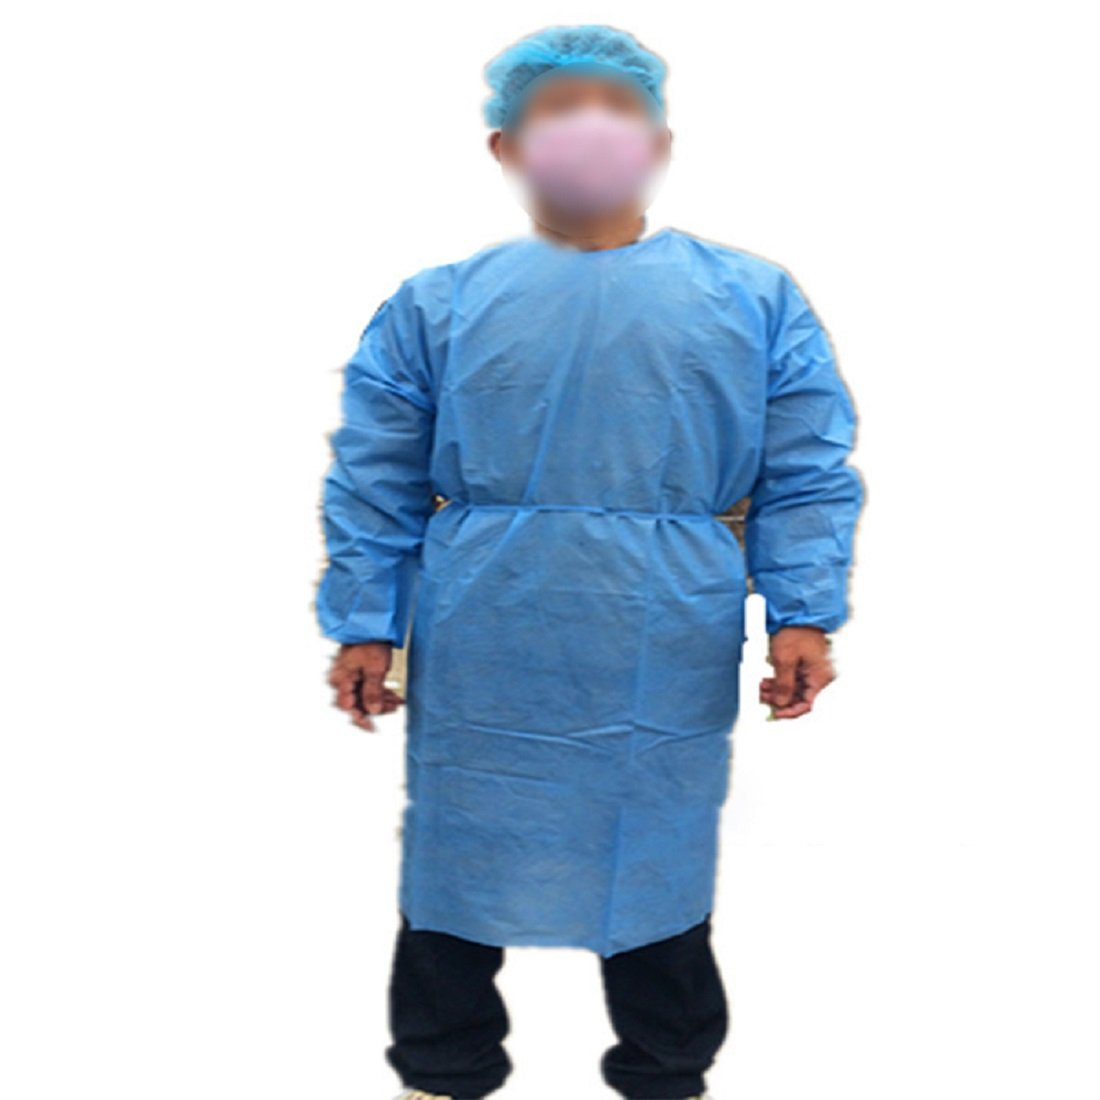 Tinsay Universal Size Blue Disposable Isolation Gowns Disposable Clean Medical Laboratory Isolation Cover Gown Surgical Clothes Pack of 10